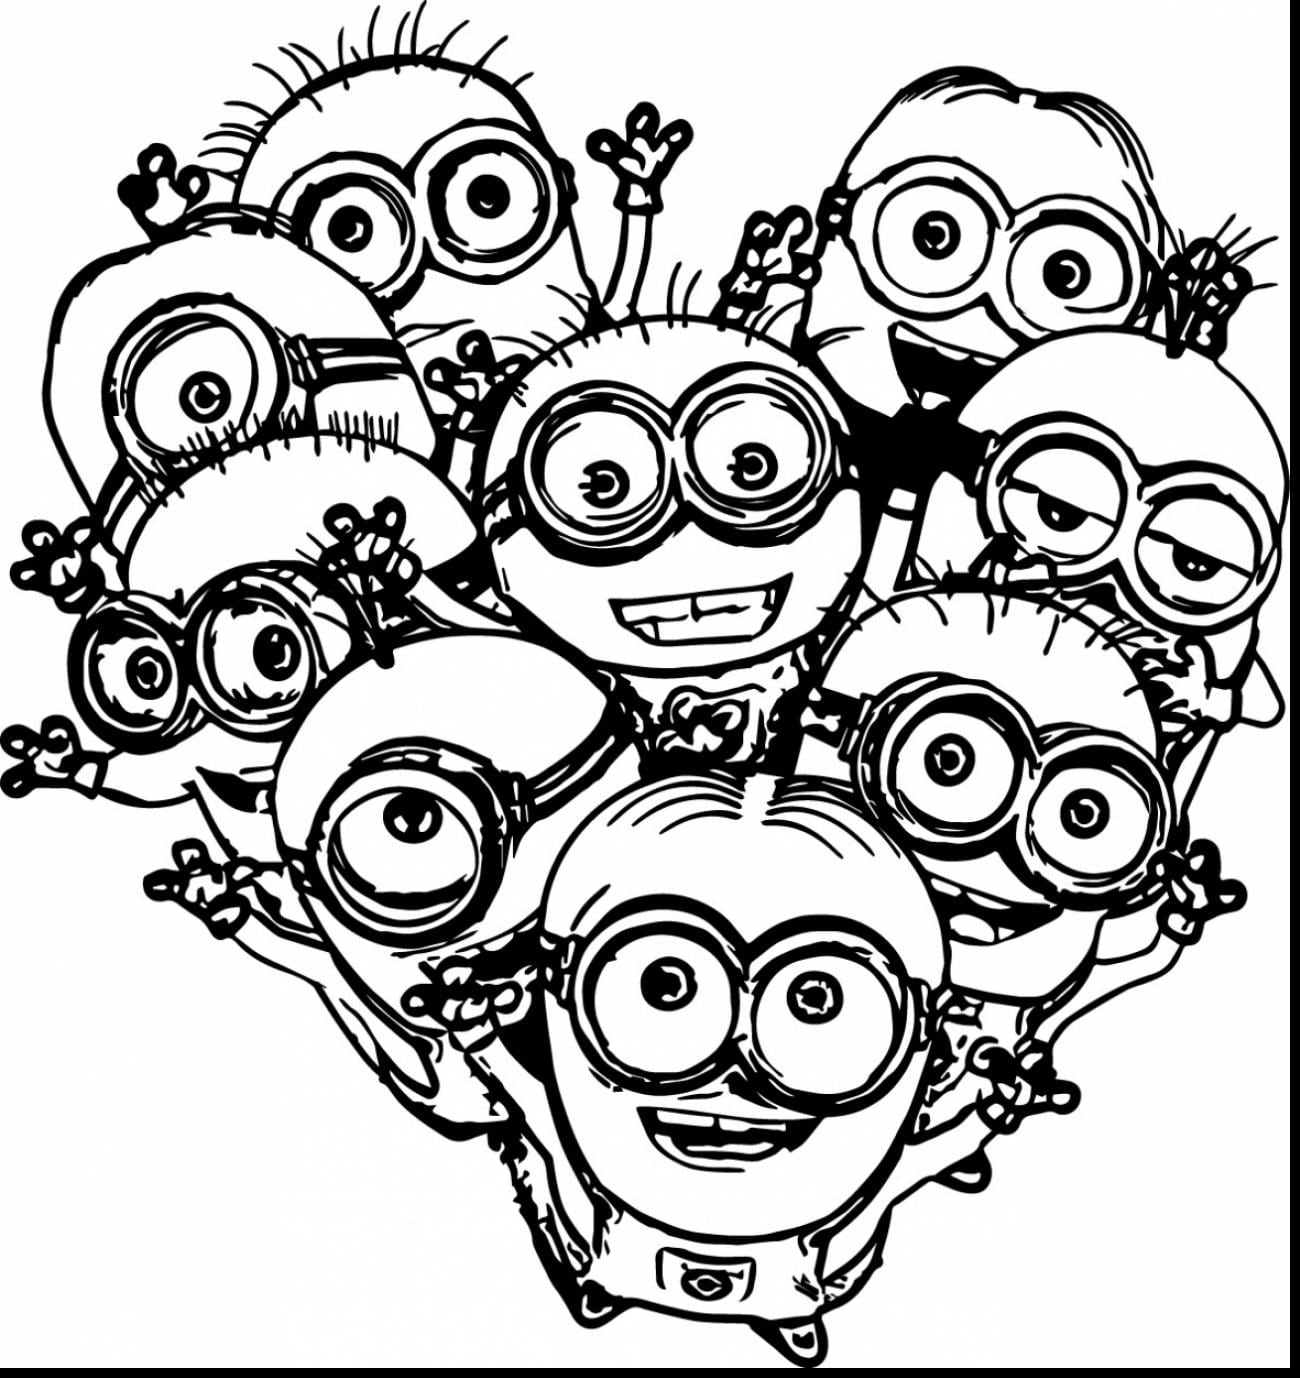 Coloring Pages Of Minions With Wallpapers High Resolution